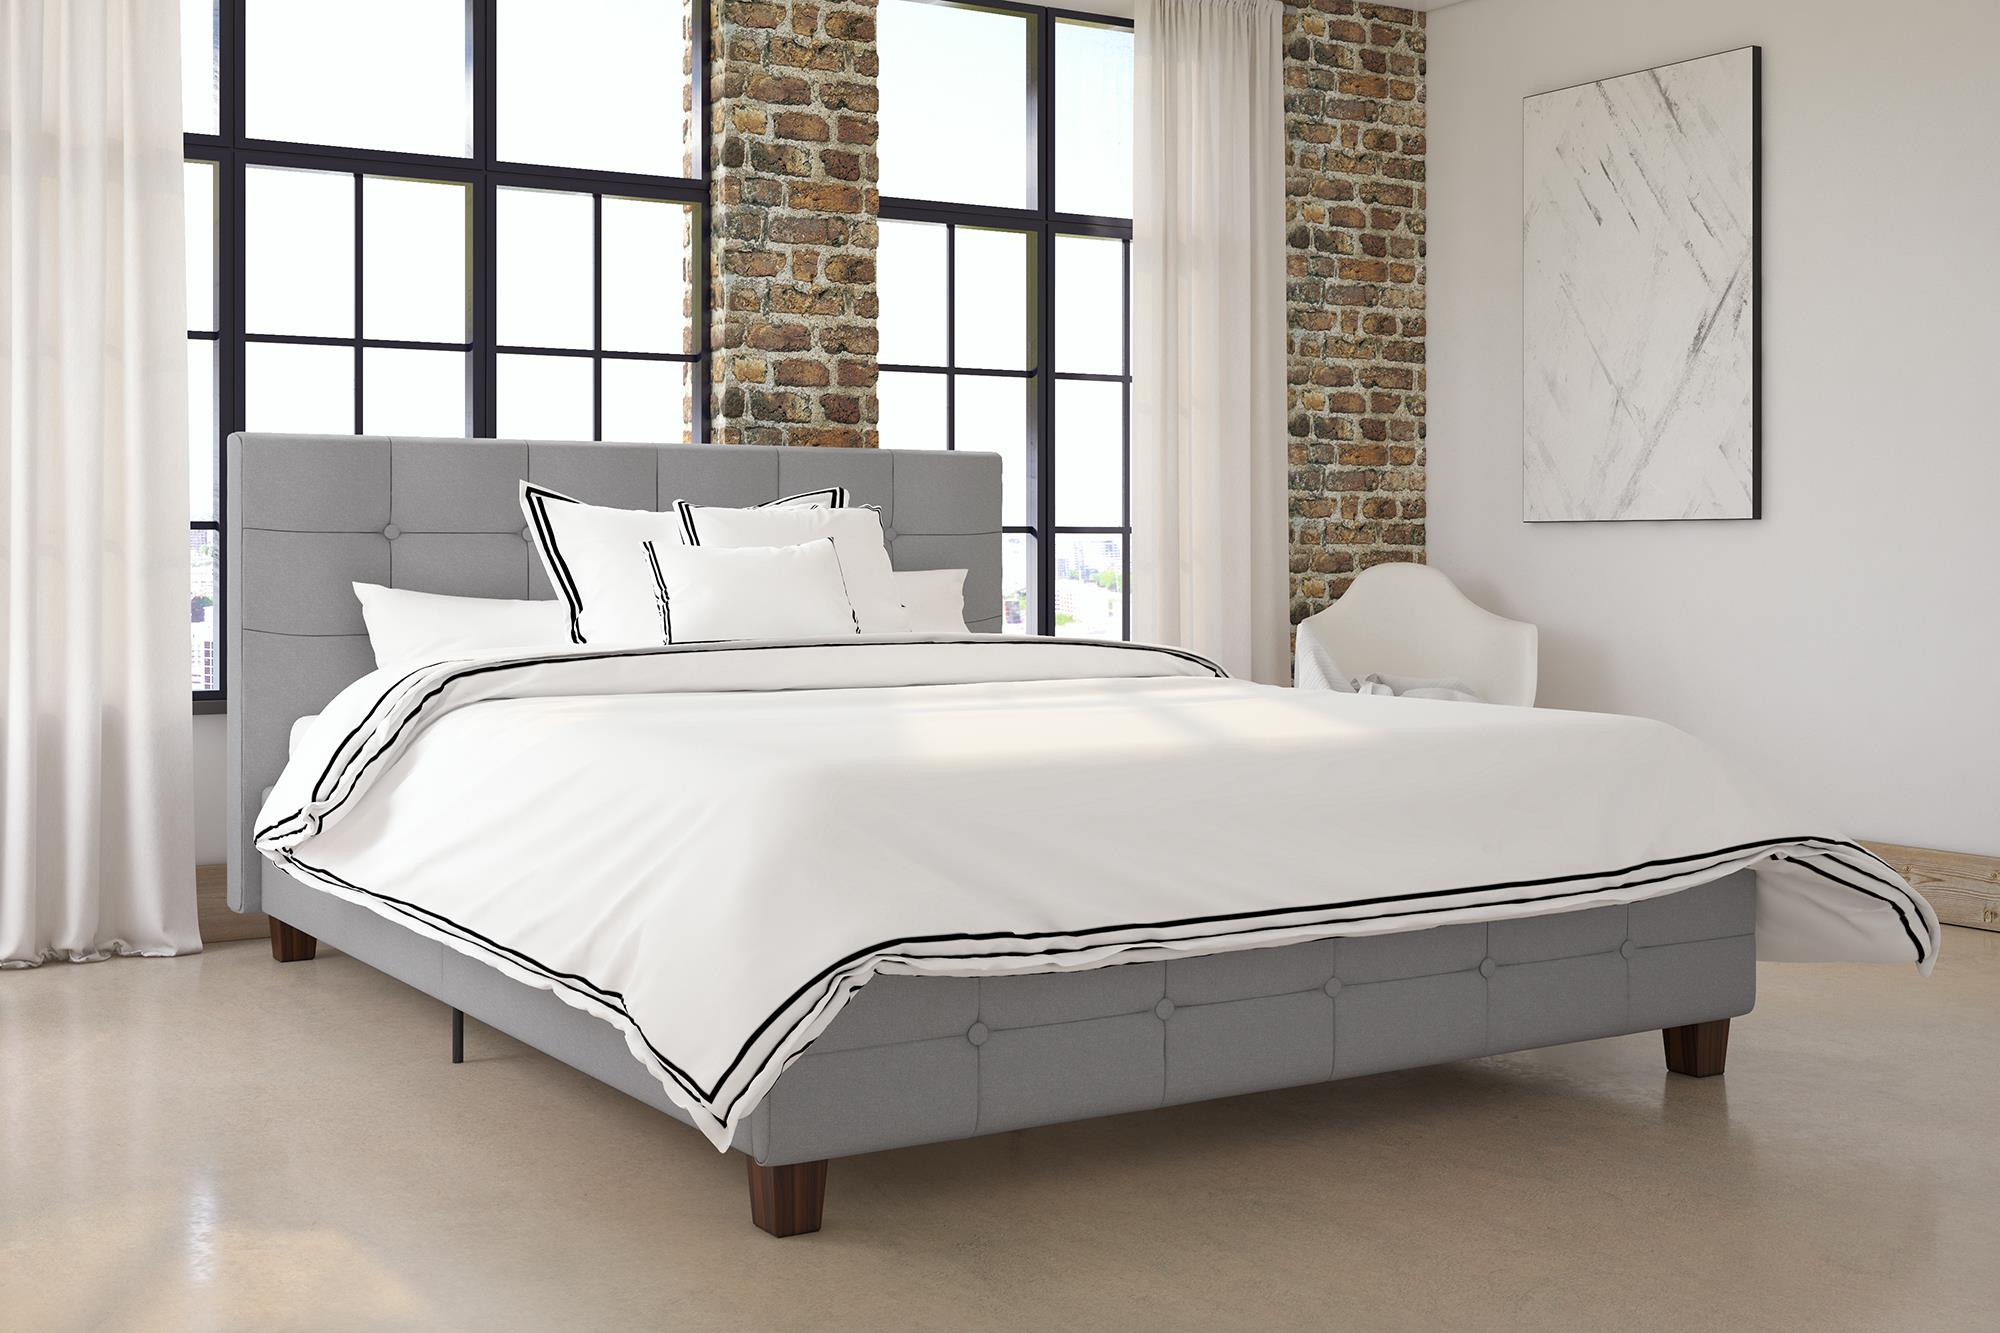 Merveilleux DHP Rose Linen Tufted Upholstered Platform Bed, Button Tufted Headboard And  Footboard With Wooden Slats